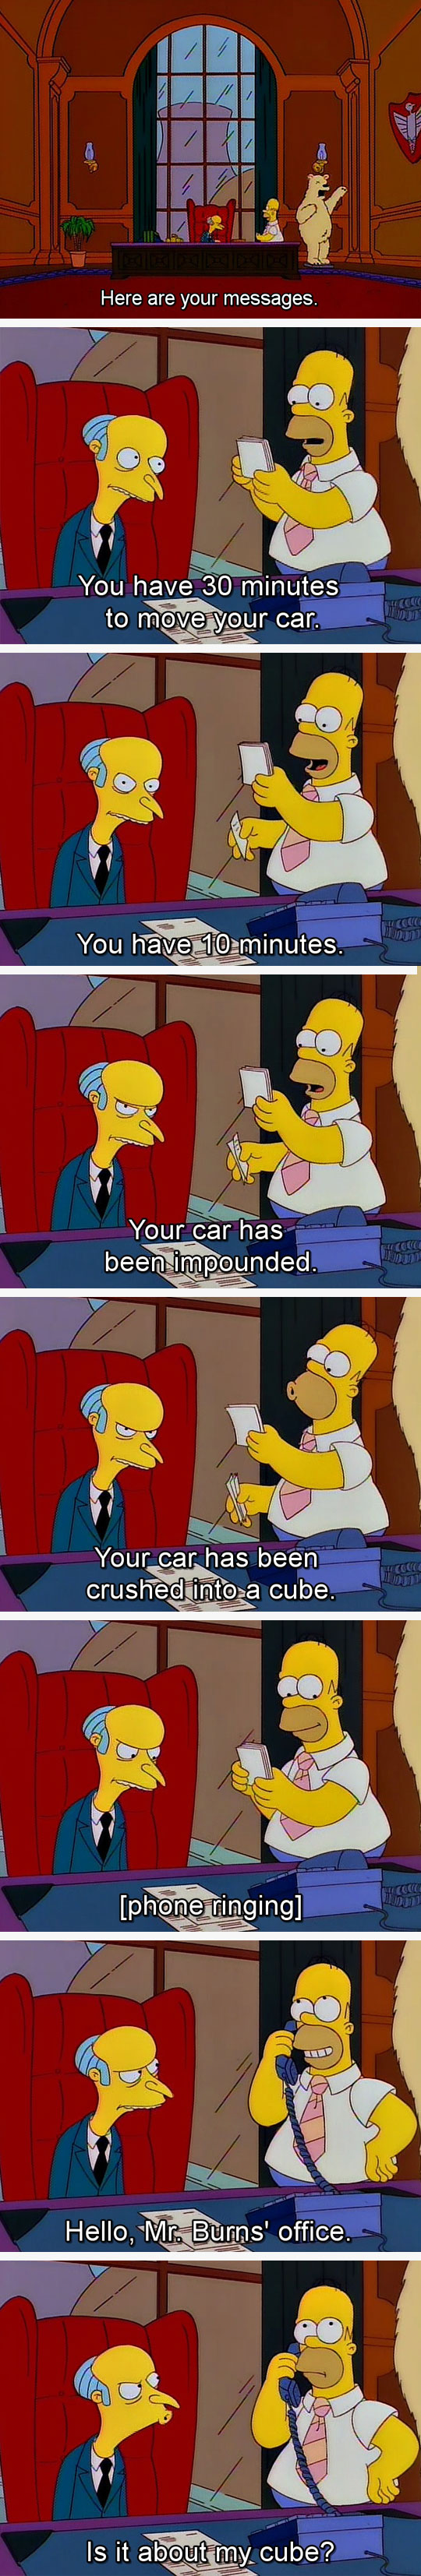 funny-Homer-Simpsons-Burns-messages-car